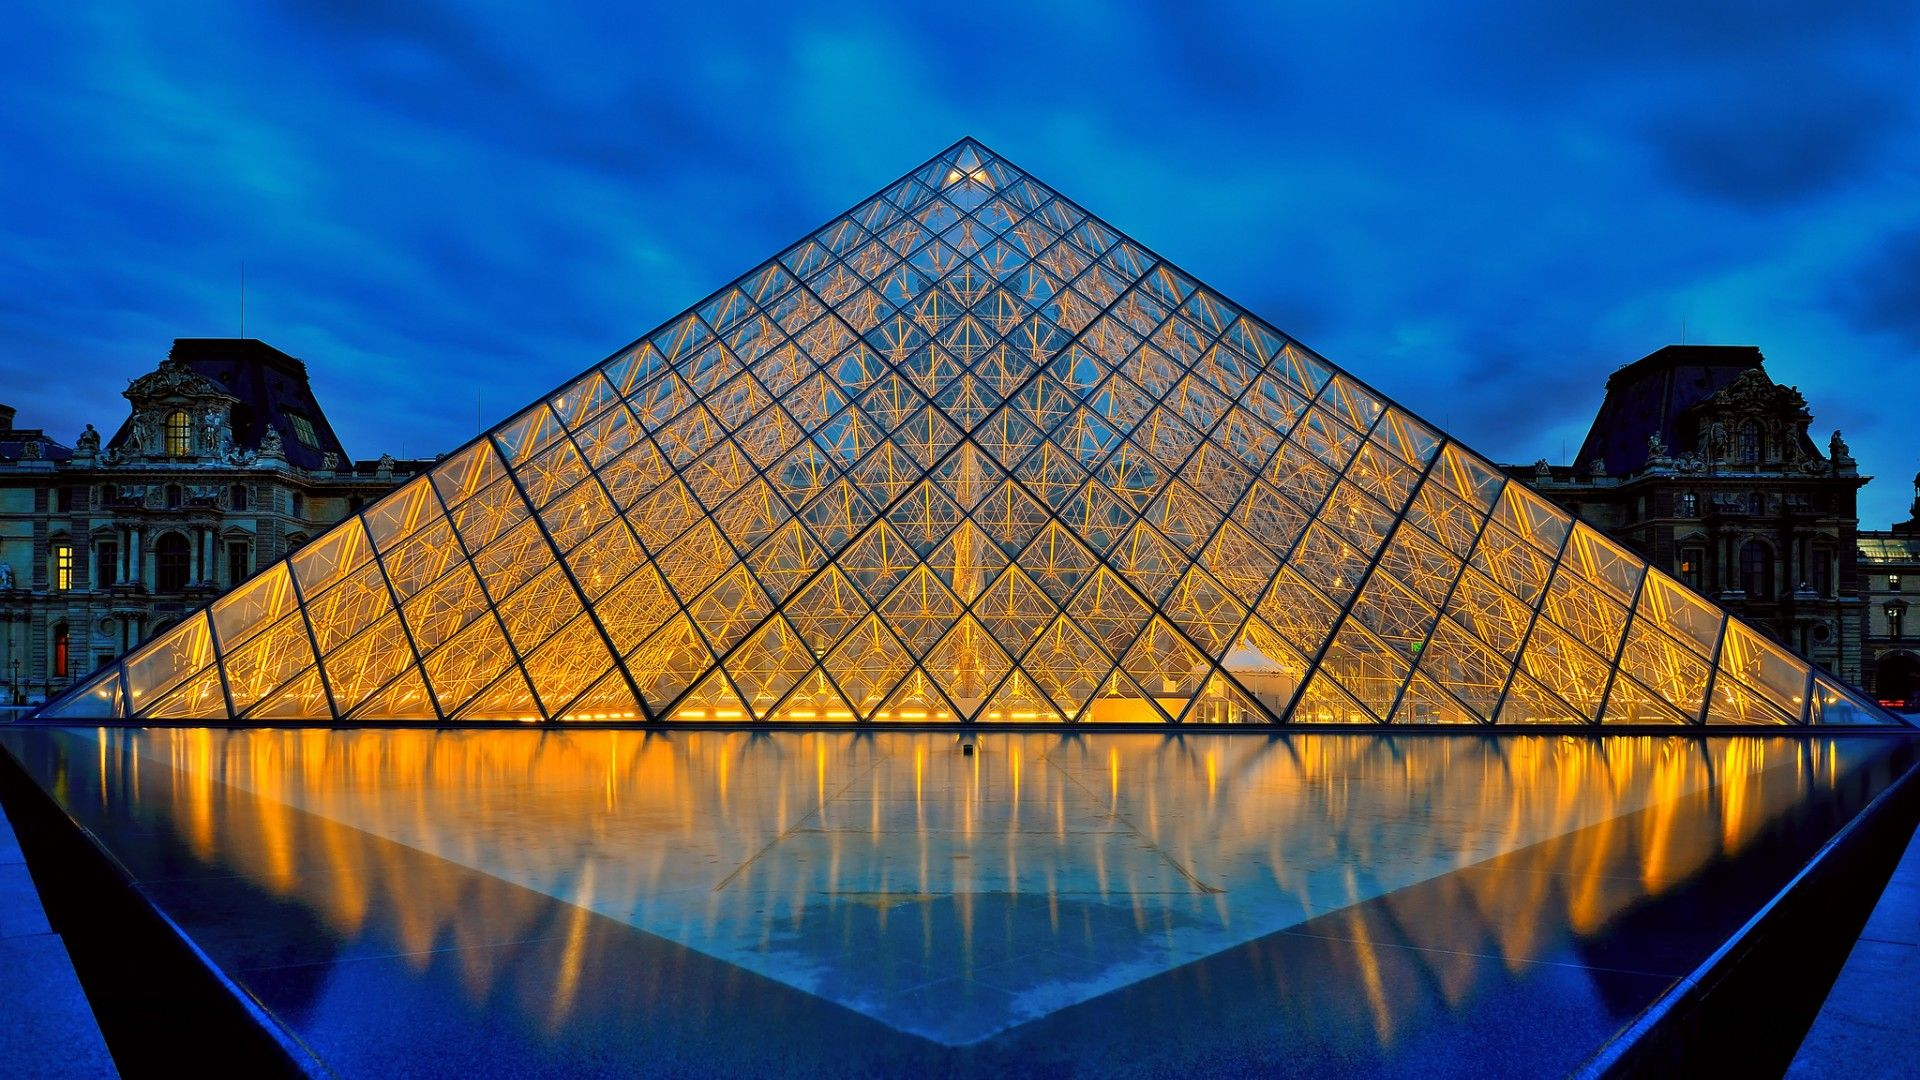 The Louvre Full HD Wallpaper   Travel HD Wallpapers triangles 1920x1080